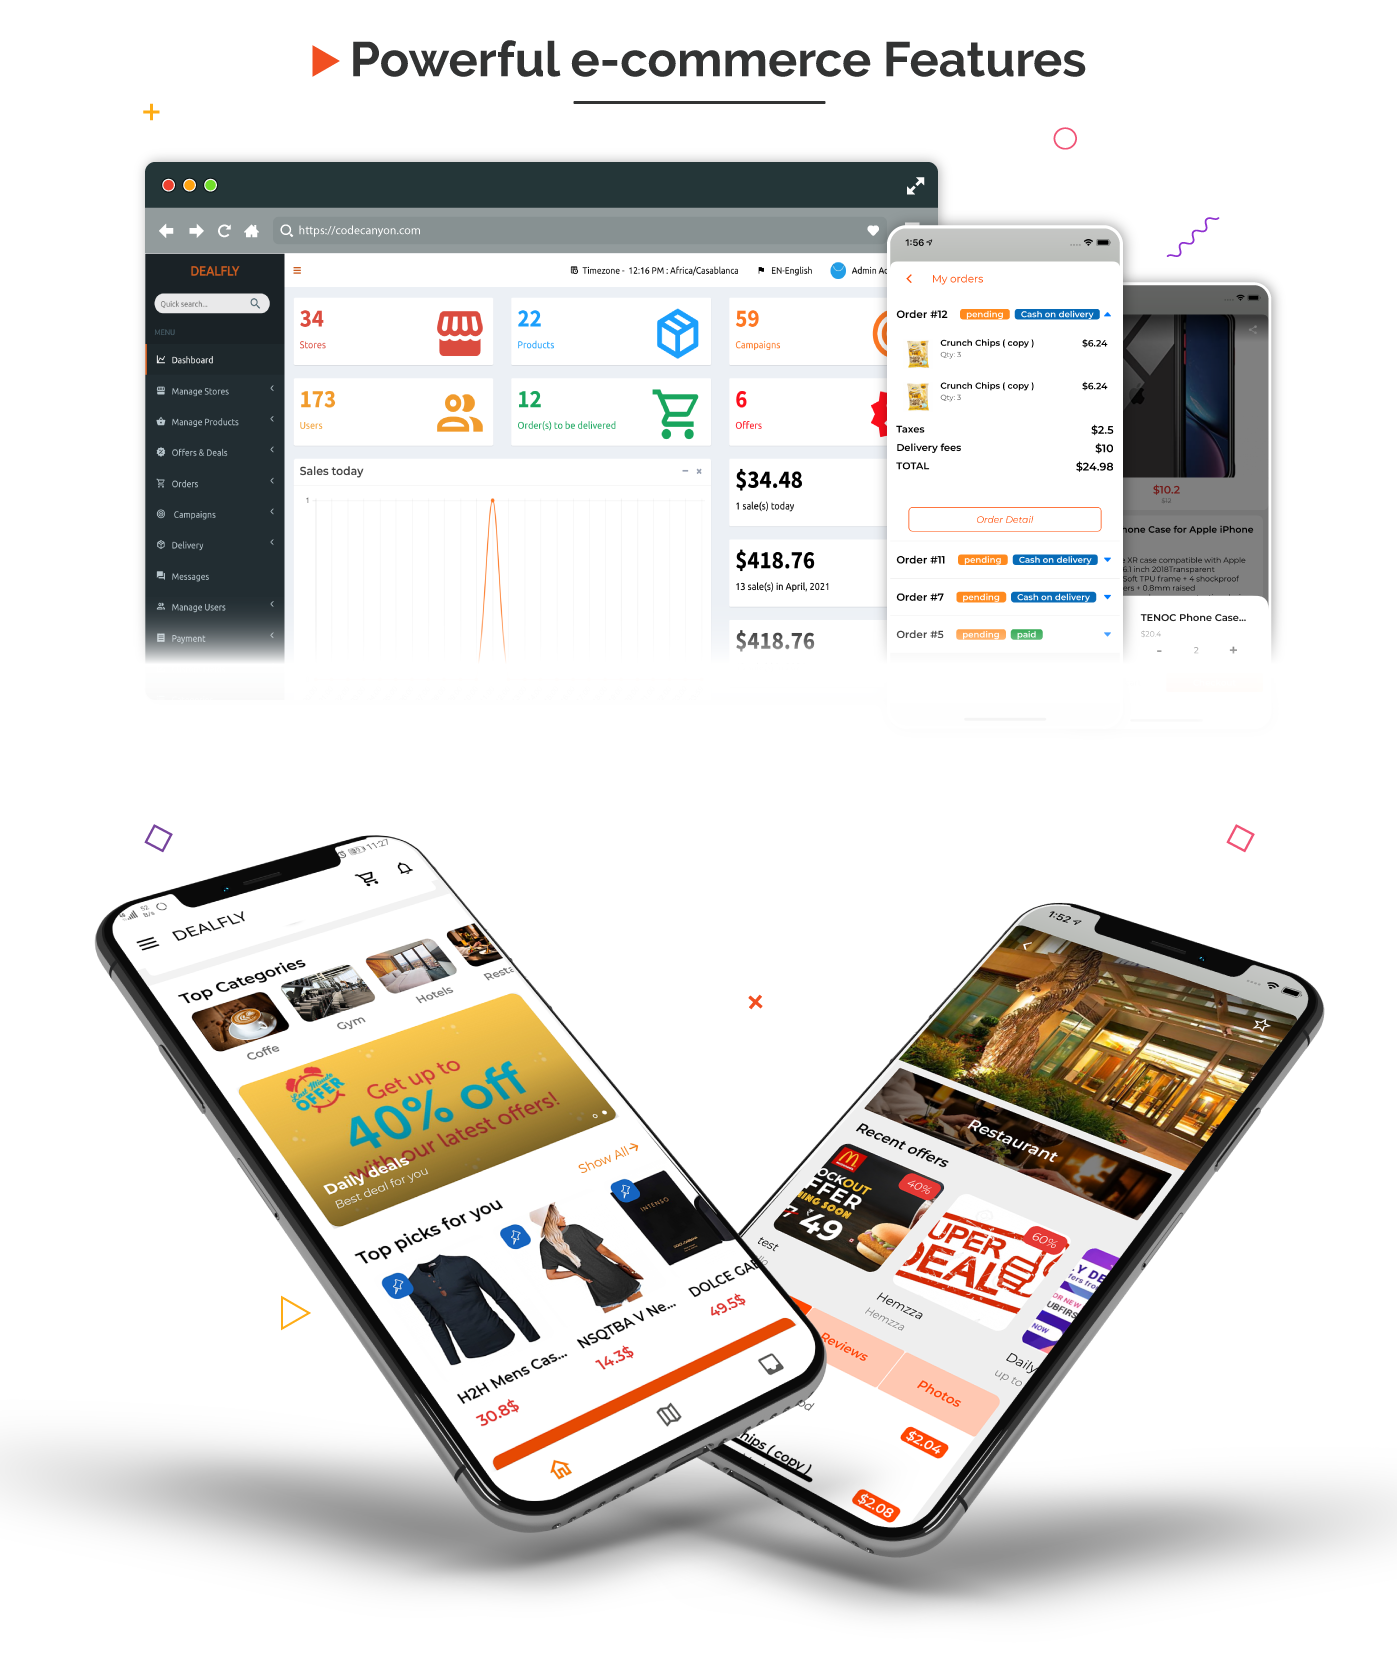 Dealfly - E-commerce & multi-vendors marketplace,Offers, Subscription system - iOS & Android - v2.1 - 2